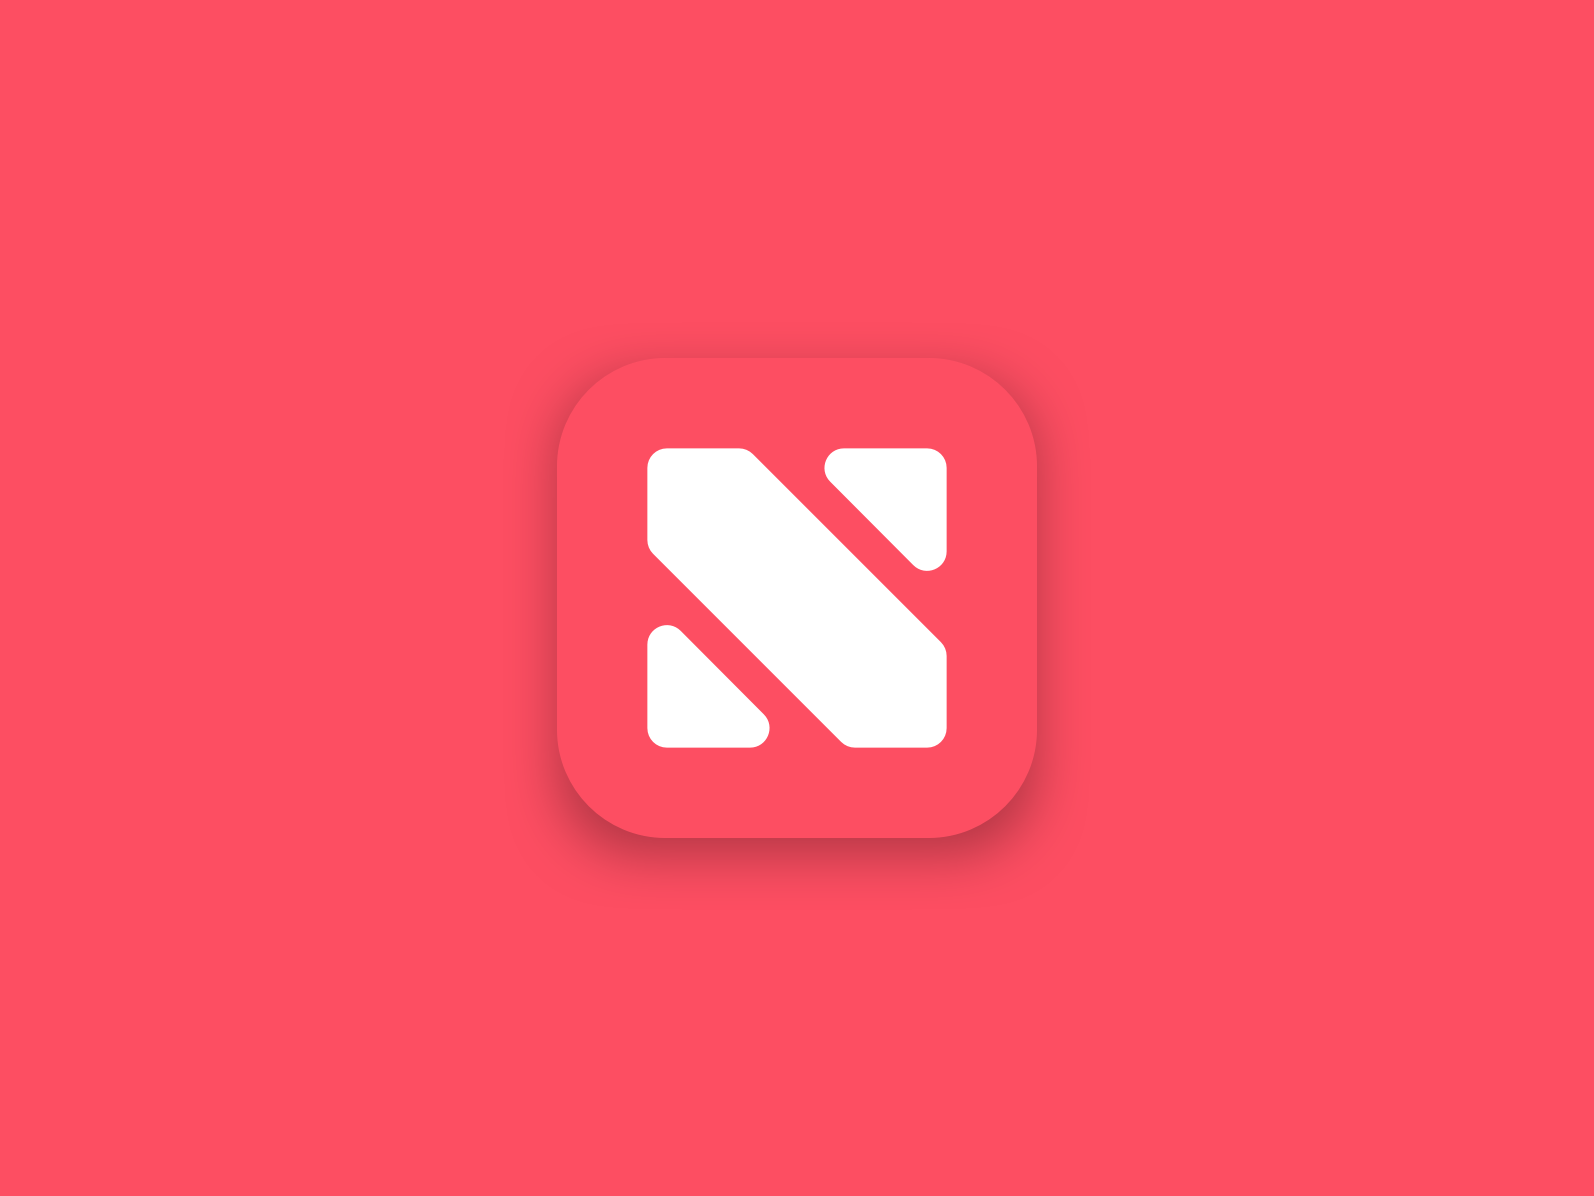 Apple News Icon n apple news apple apple icon iconography icon app icon